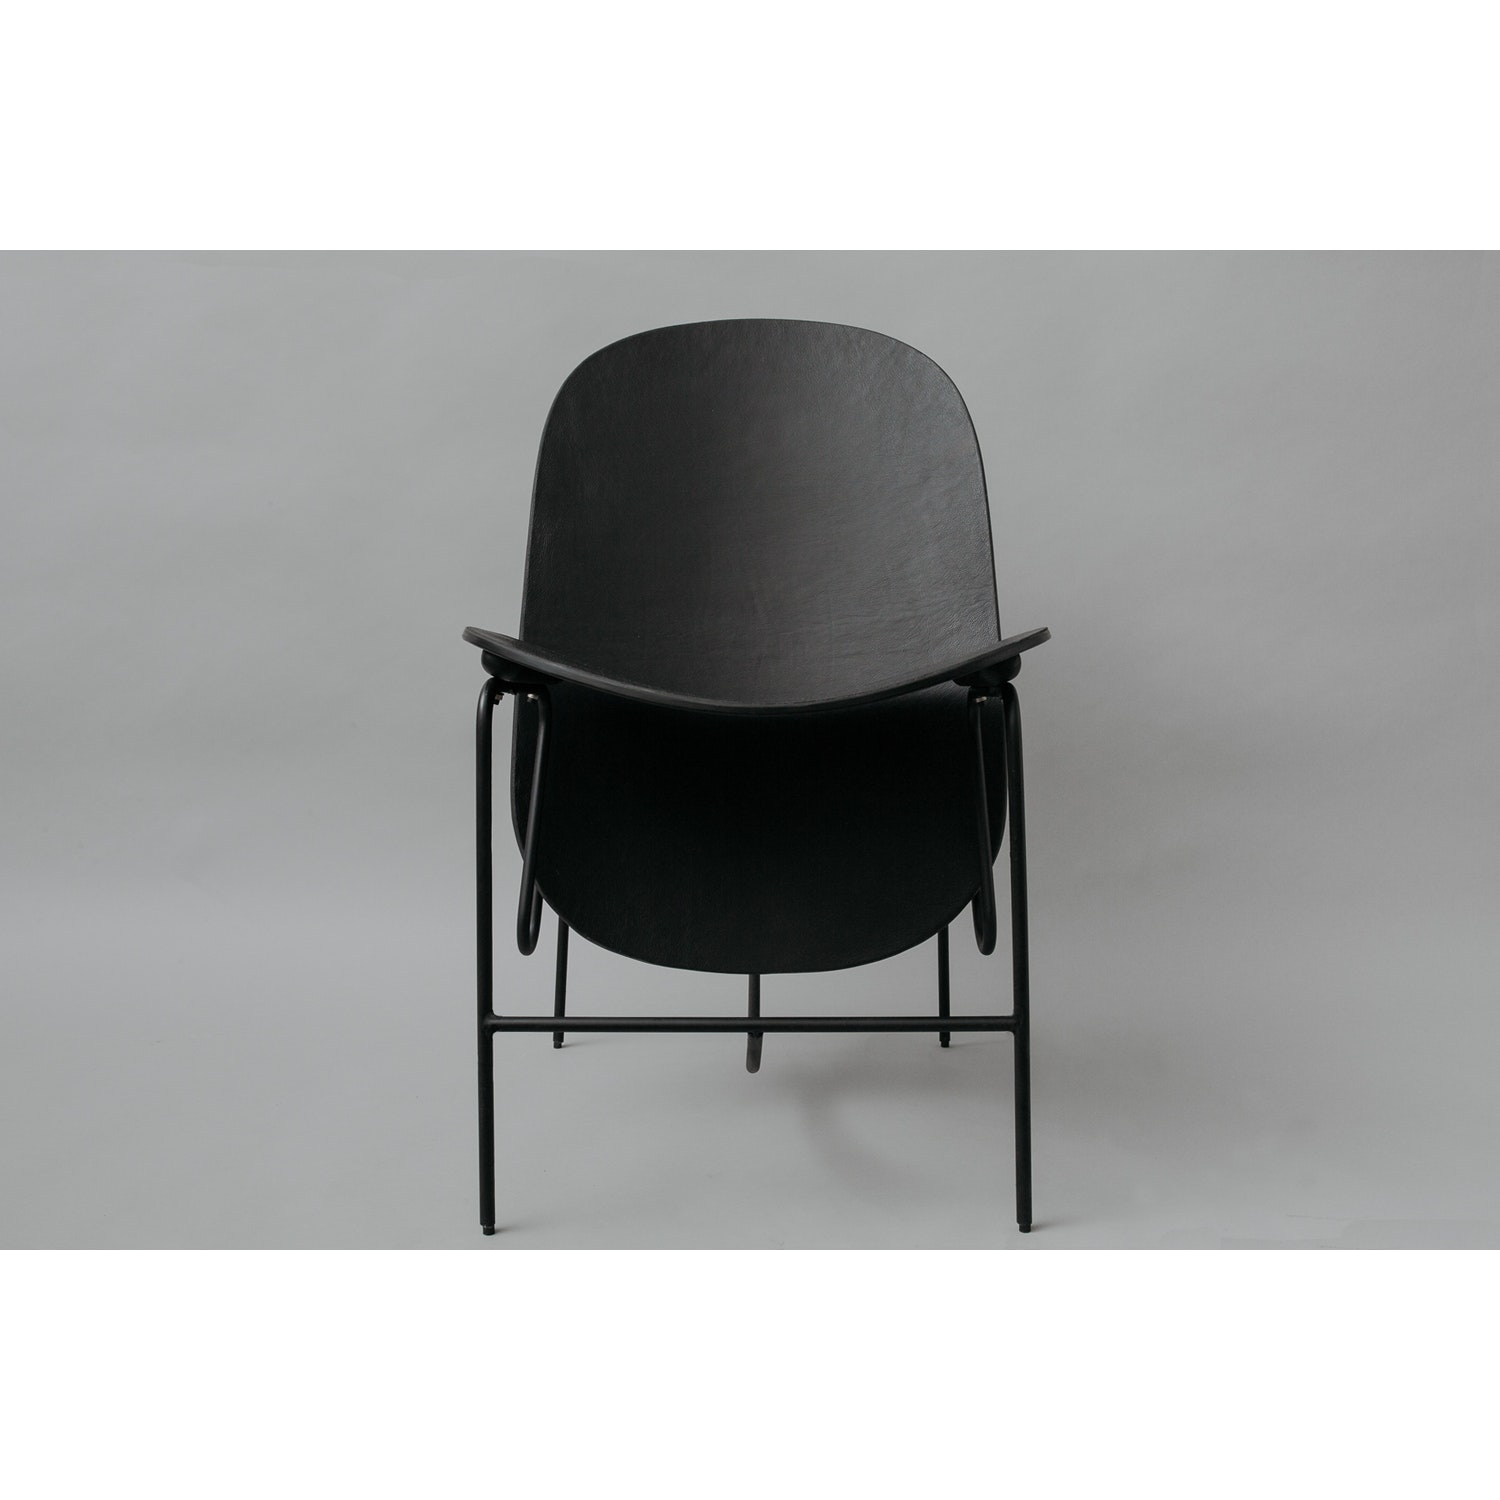 Modern Dining Chairs By Contemporary Designers At Haute Living